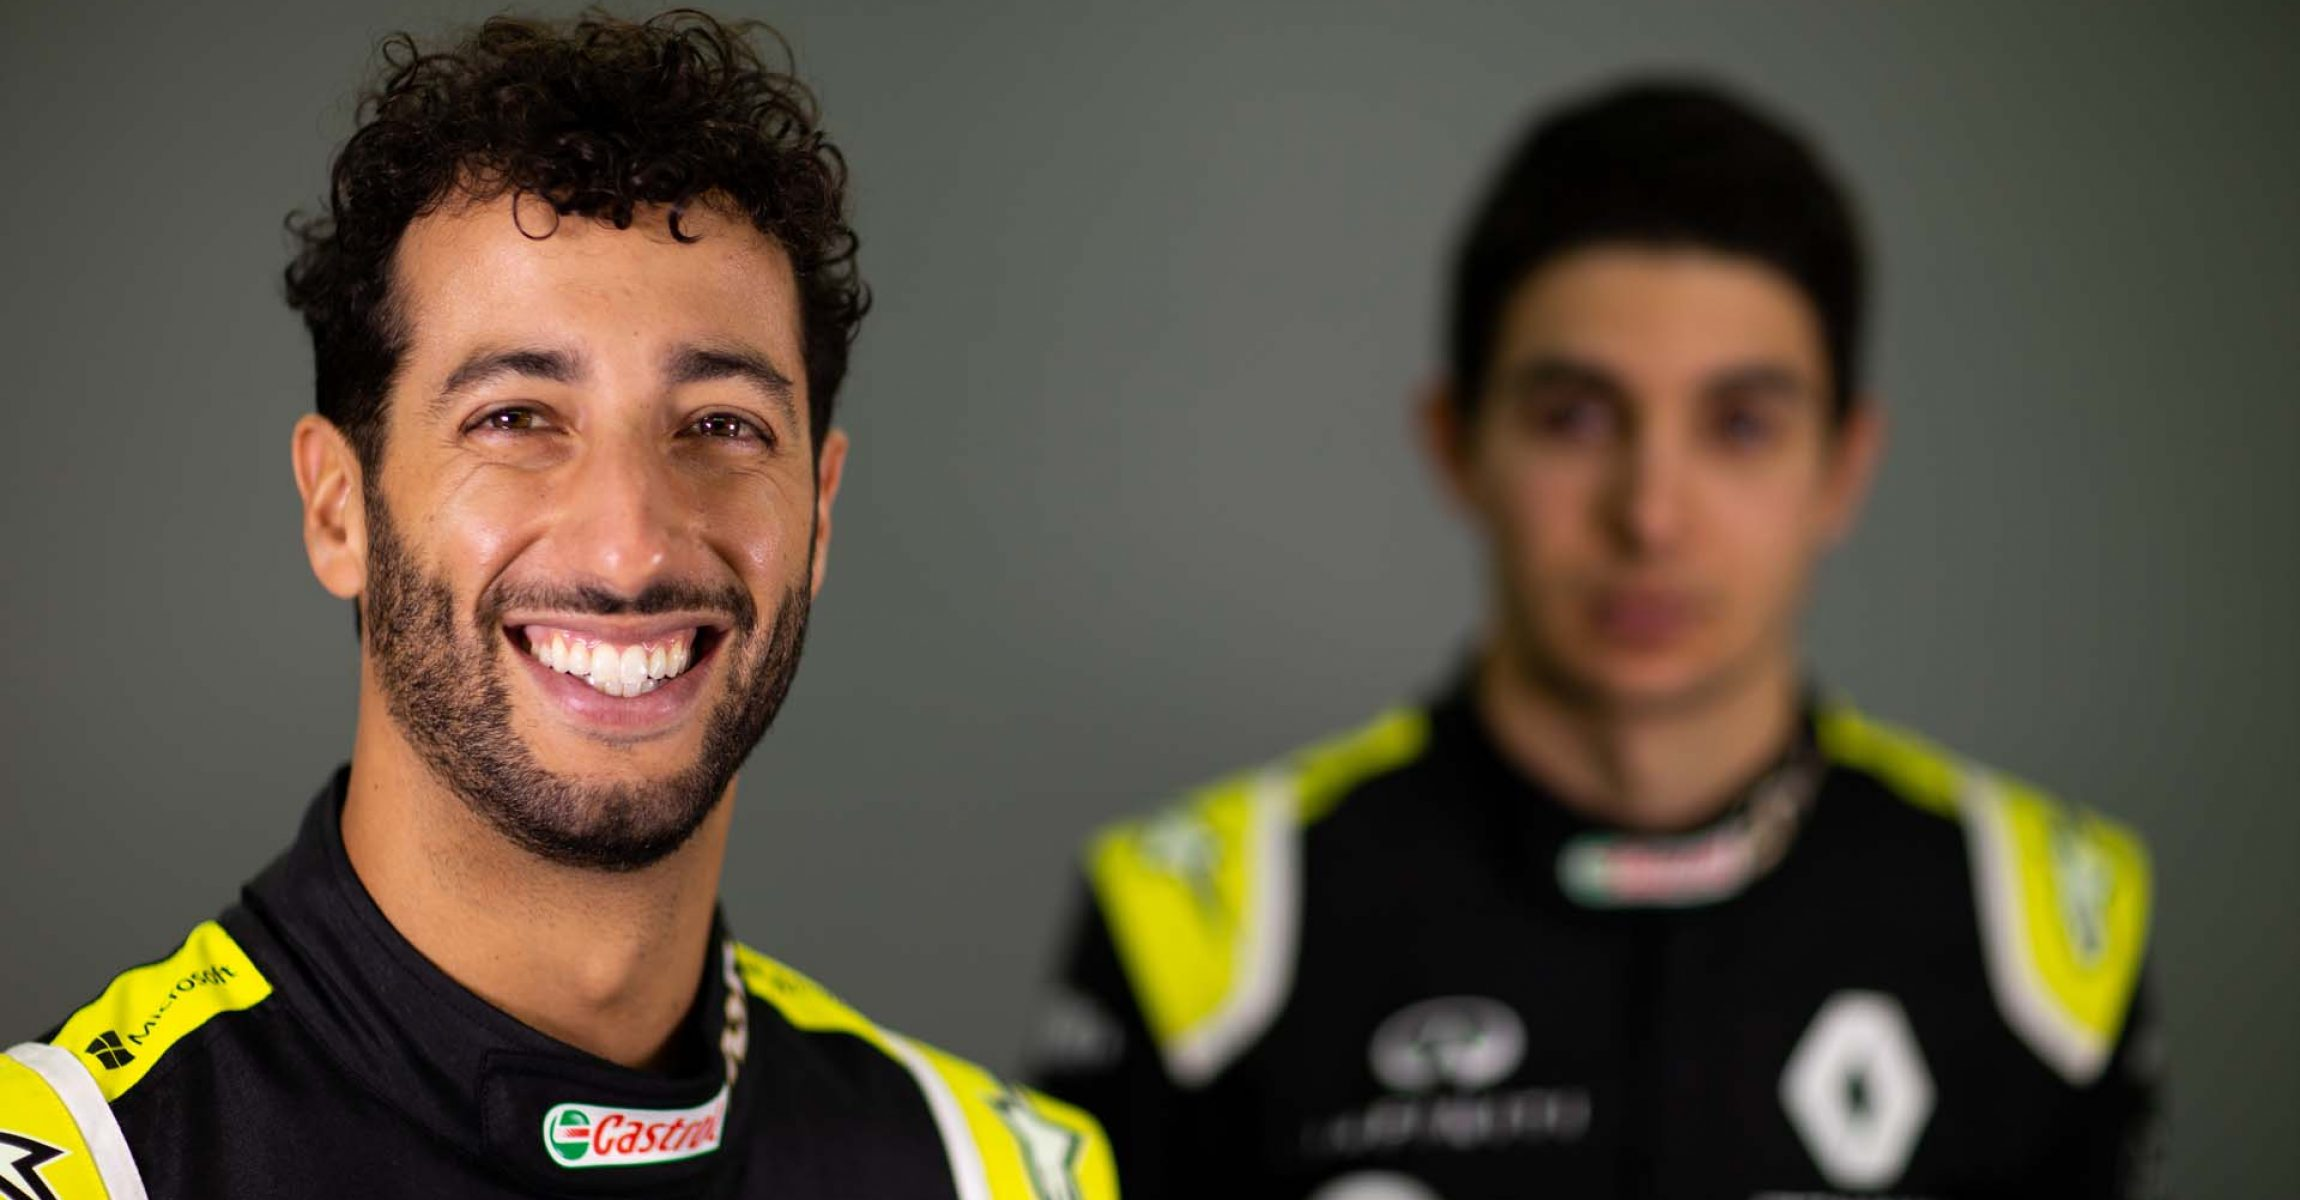 Daniel Ricciardo (AUS) Renault F1 Team with team mate Esteban Ocon (FRA) Renault F1 Team. Renault F1 Team Season Opener, Wednesday 12th February 2020. L'Atelier Renault, Paris, France.